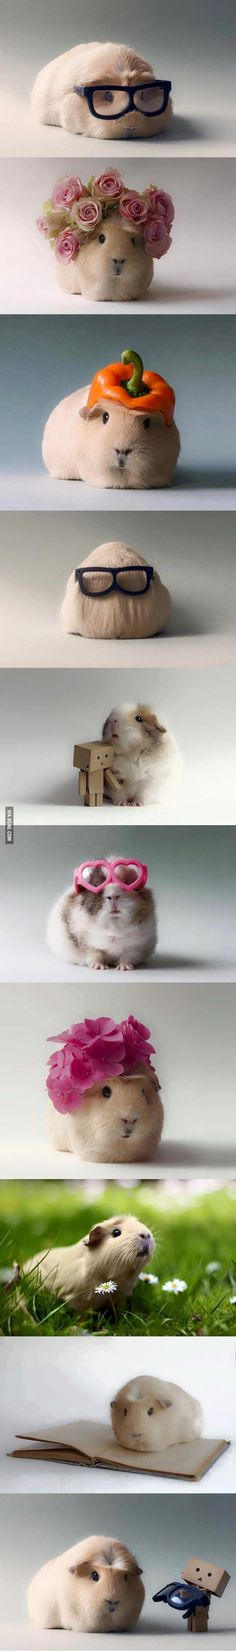 Hamsters with things on their heads! Having a bad day? These floofs will help you cheer up! Cute Funny Animals, Funny Animal Pictures, Cute Baby Animals, Funny Cute, Animals And Pets, Cute Pictures, Funny Dogs, Bizarre Pictures, Happy Pictures